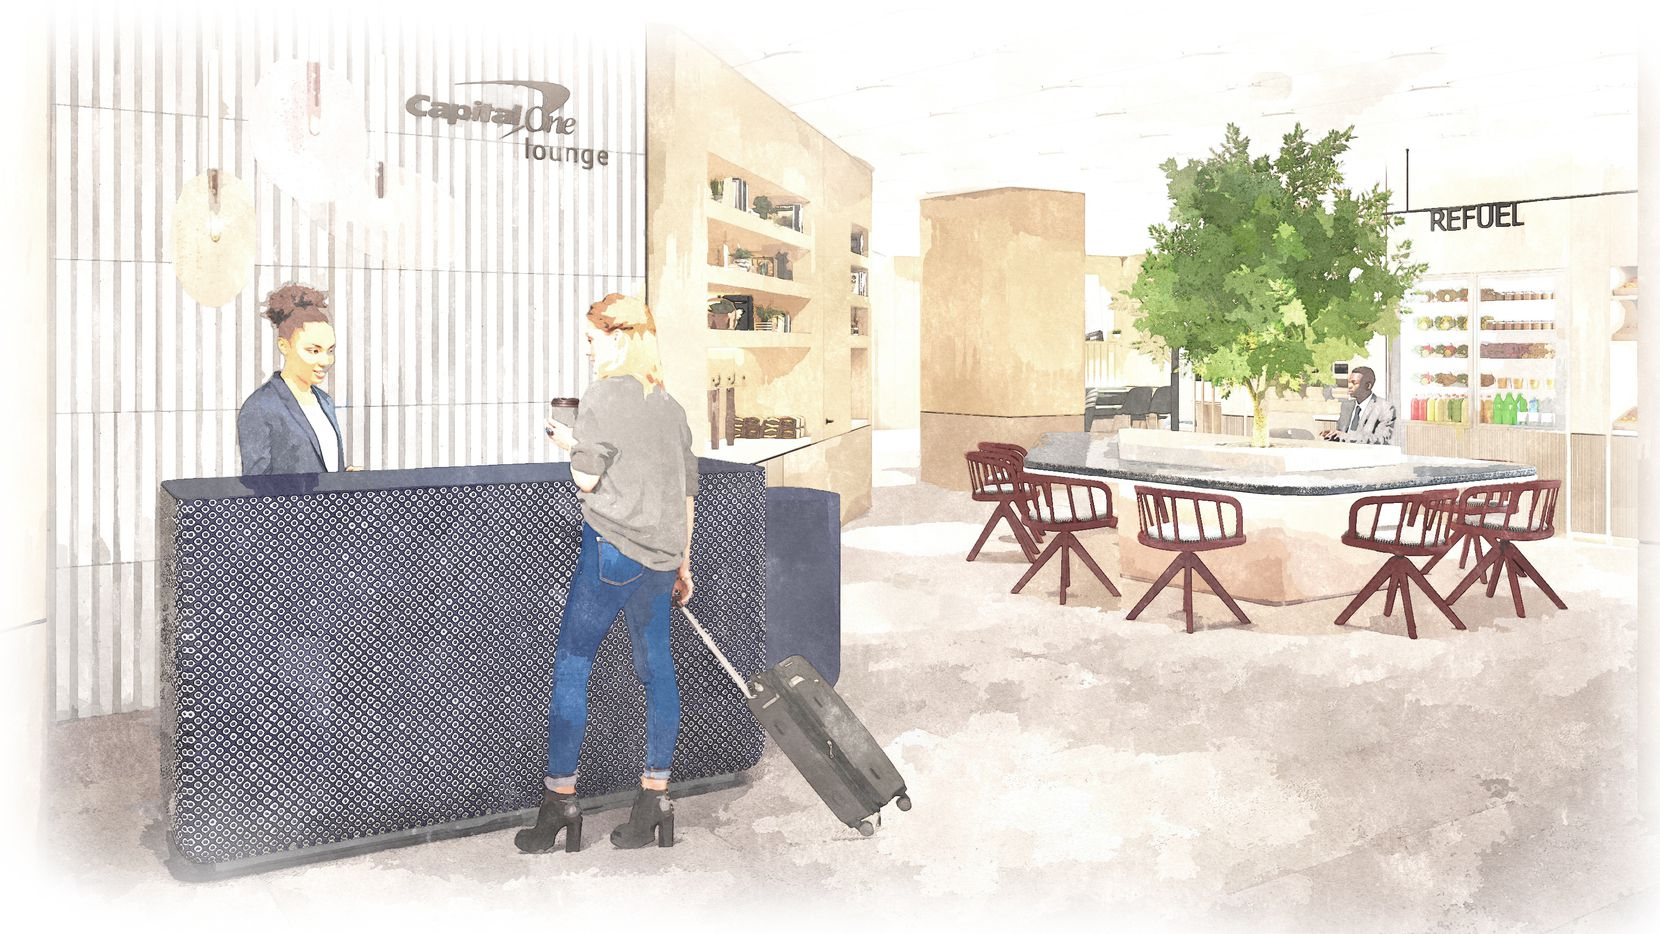 Capital One is opening airport lounges at DFW and Dulles. This artist's rendering shows the lounge entrance, featuring a quiet work zone and grab-and-go food area.